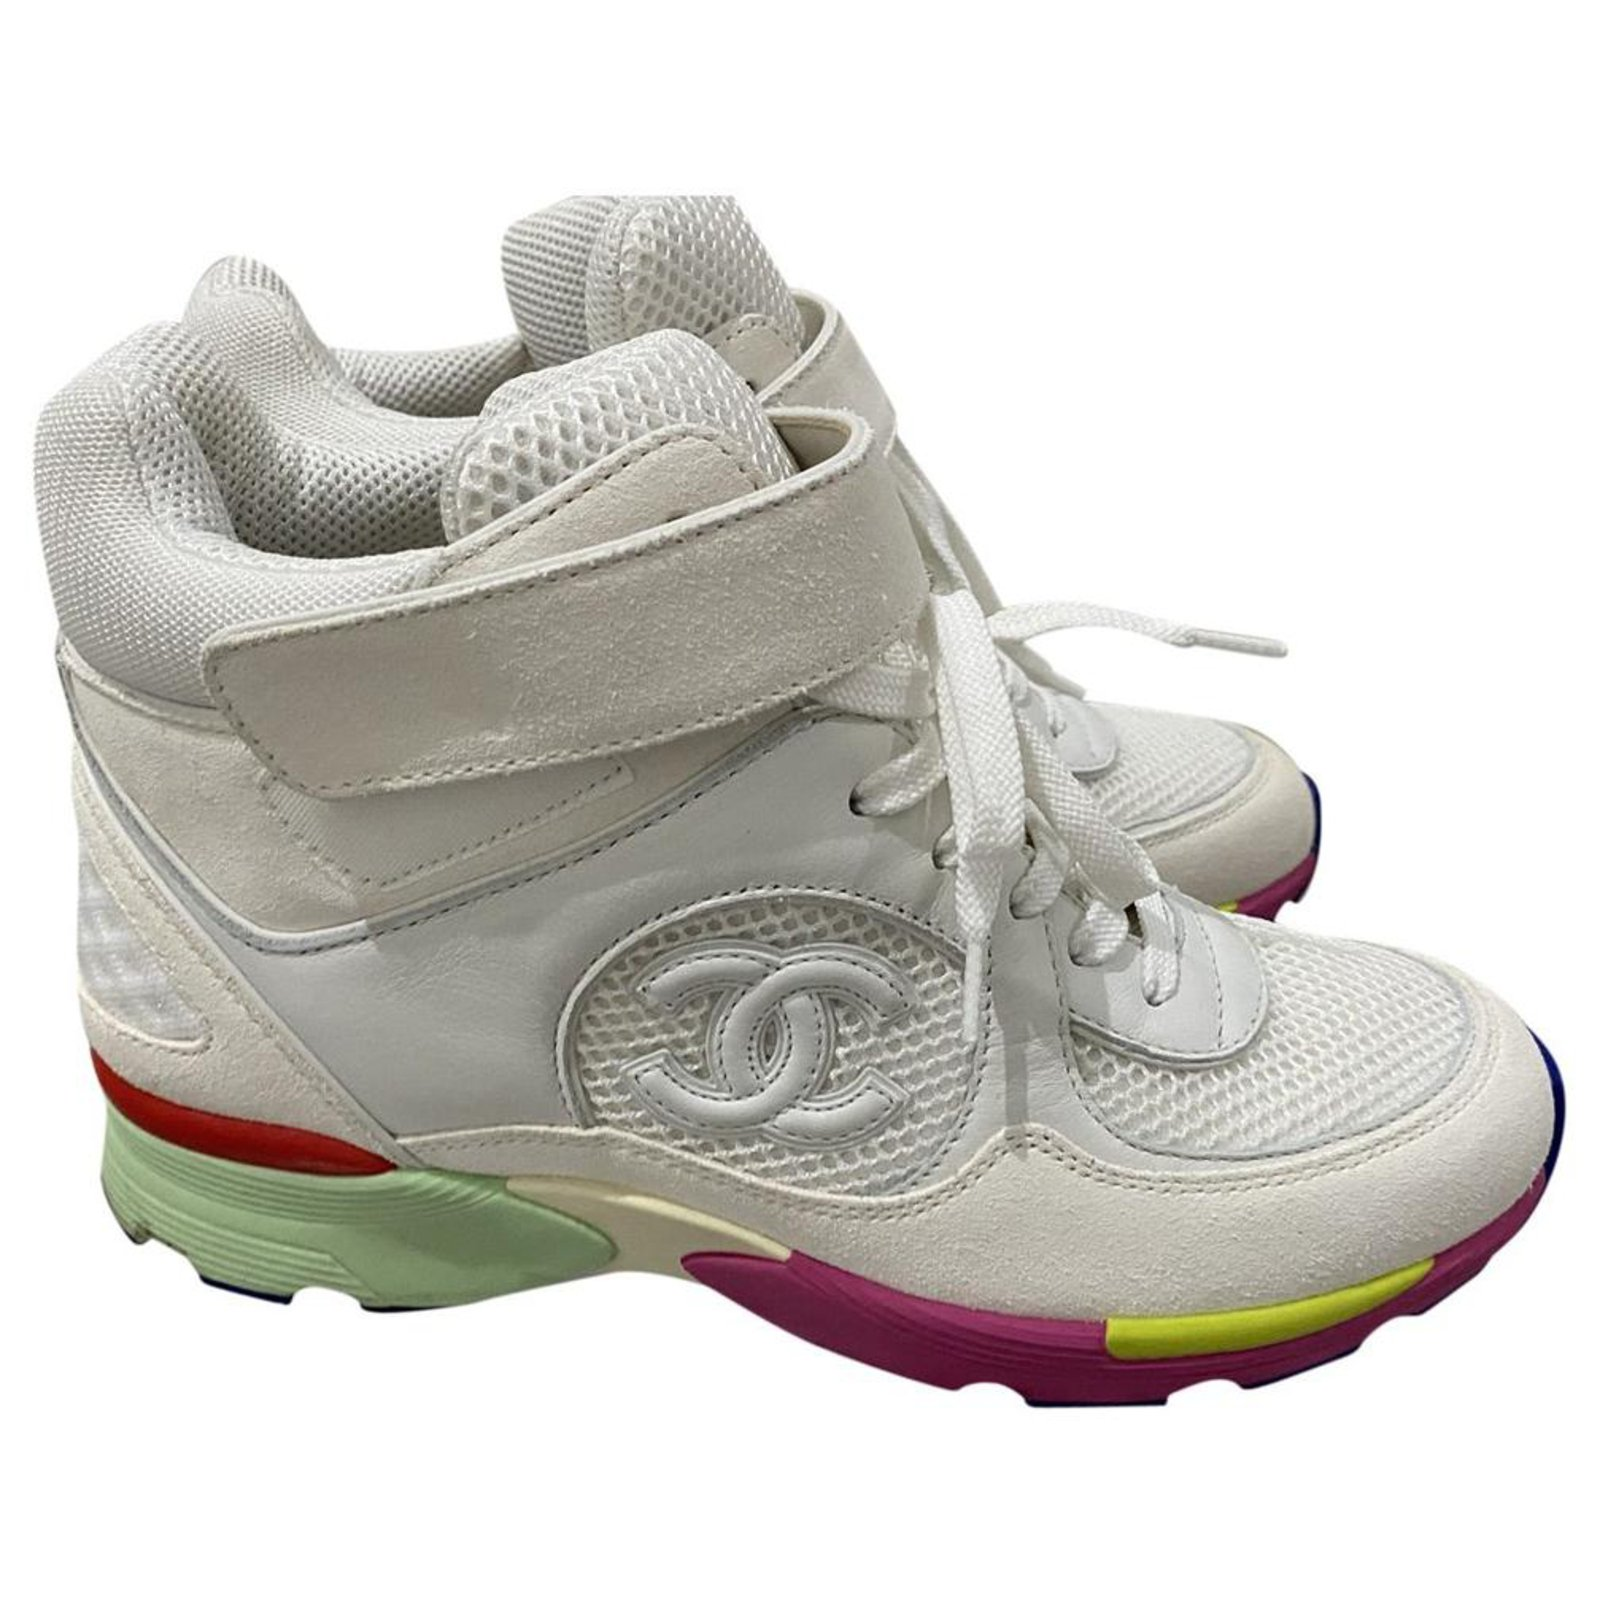 Chanel rainbow sole CC sneakers